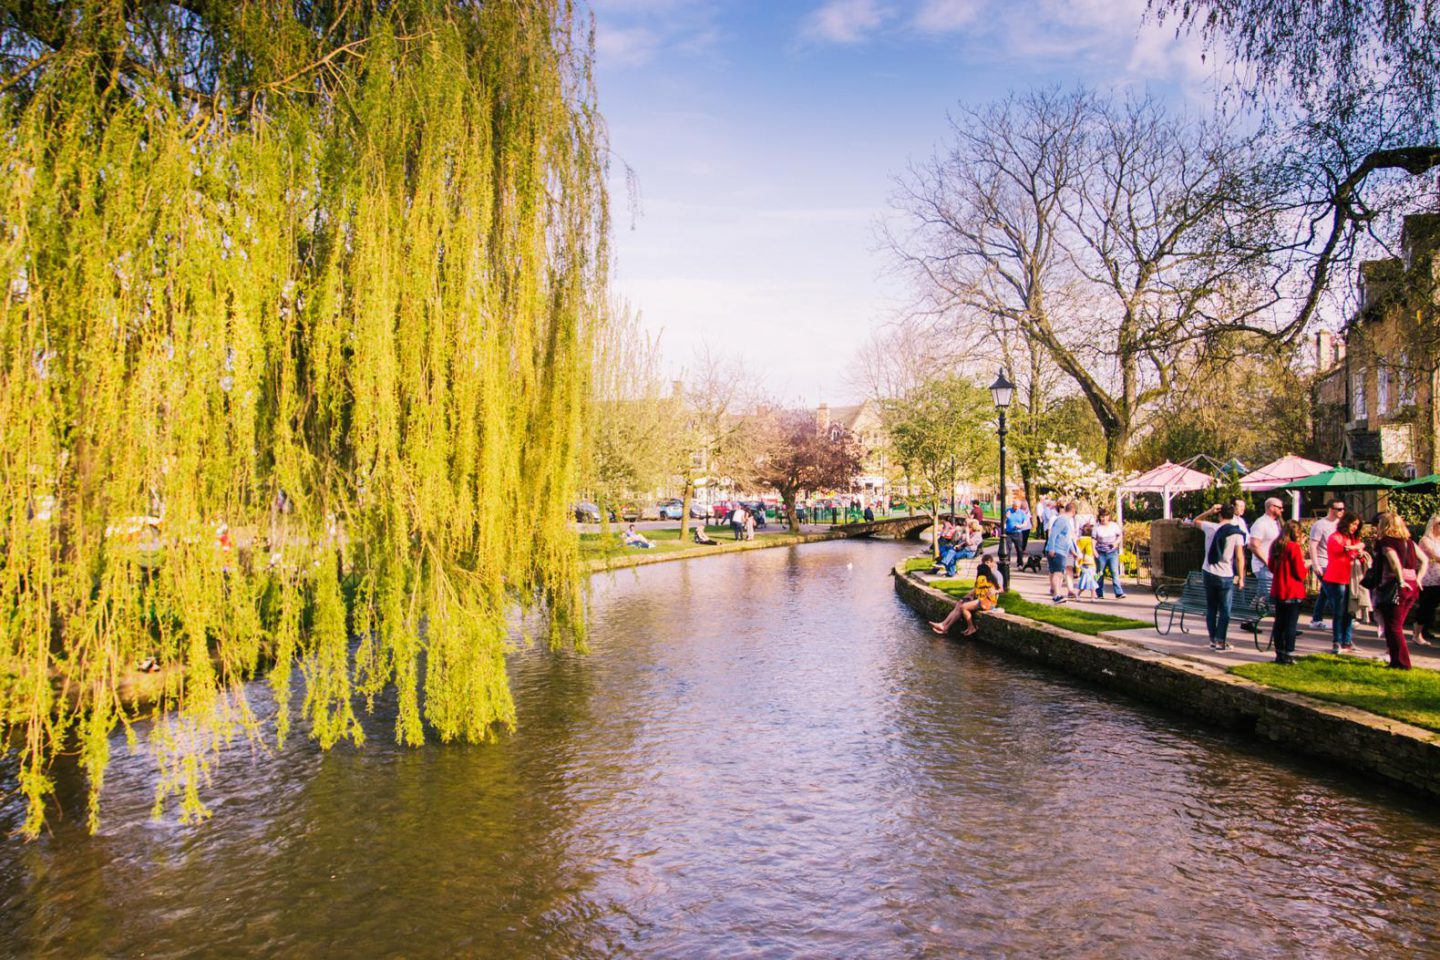 Days out in the UK: idyllic Cotswolds village Bourton on the Water